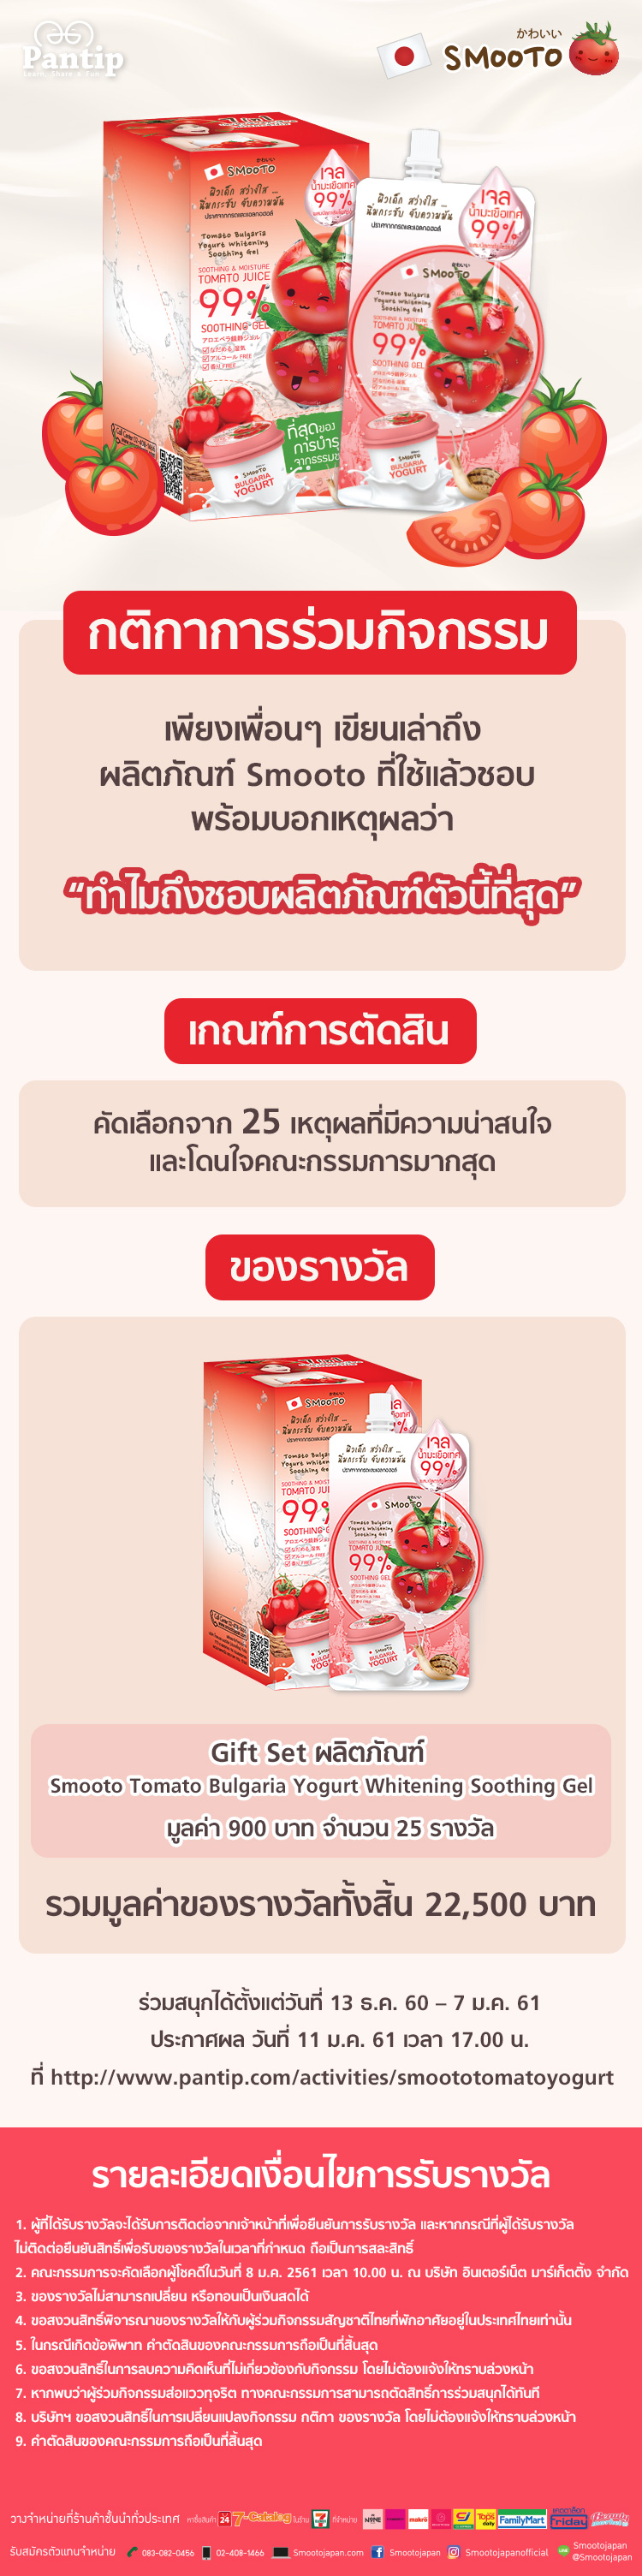 Pantip Smooto Tomato Gluta Aura Sleeping Mask 13 60 7 61 11 1700 Http Activities Smoototomatoyogurt